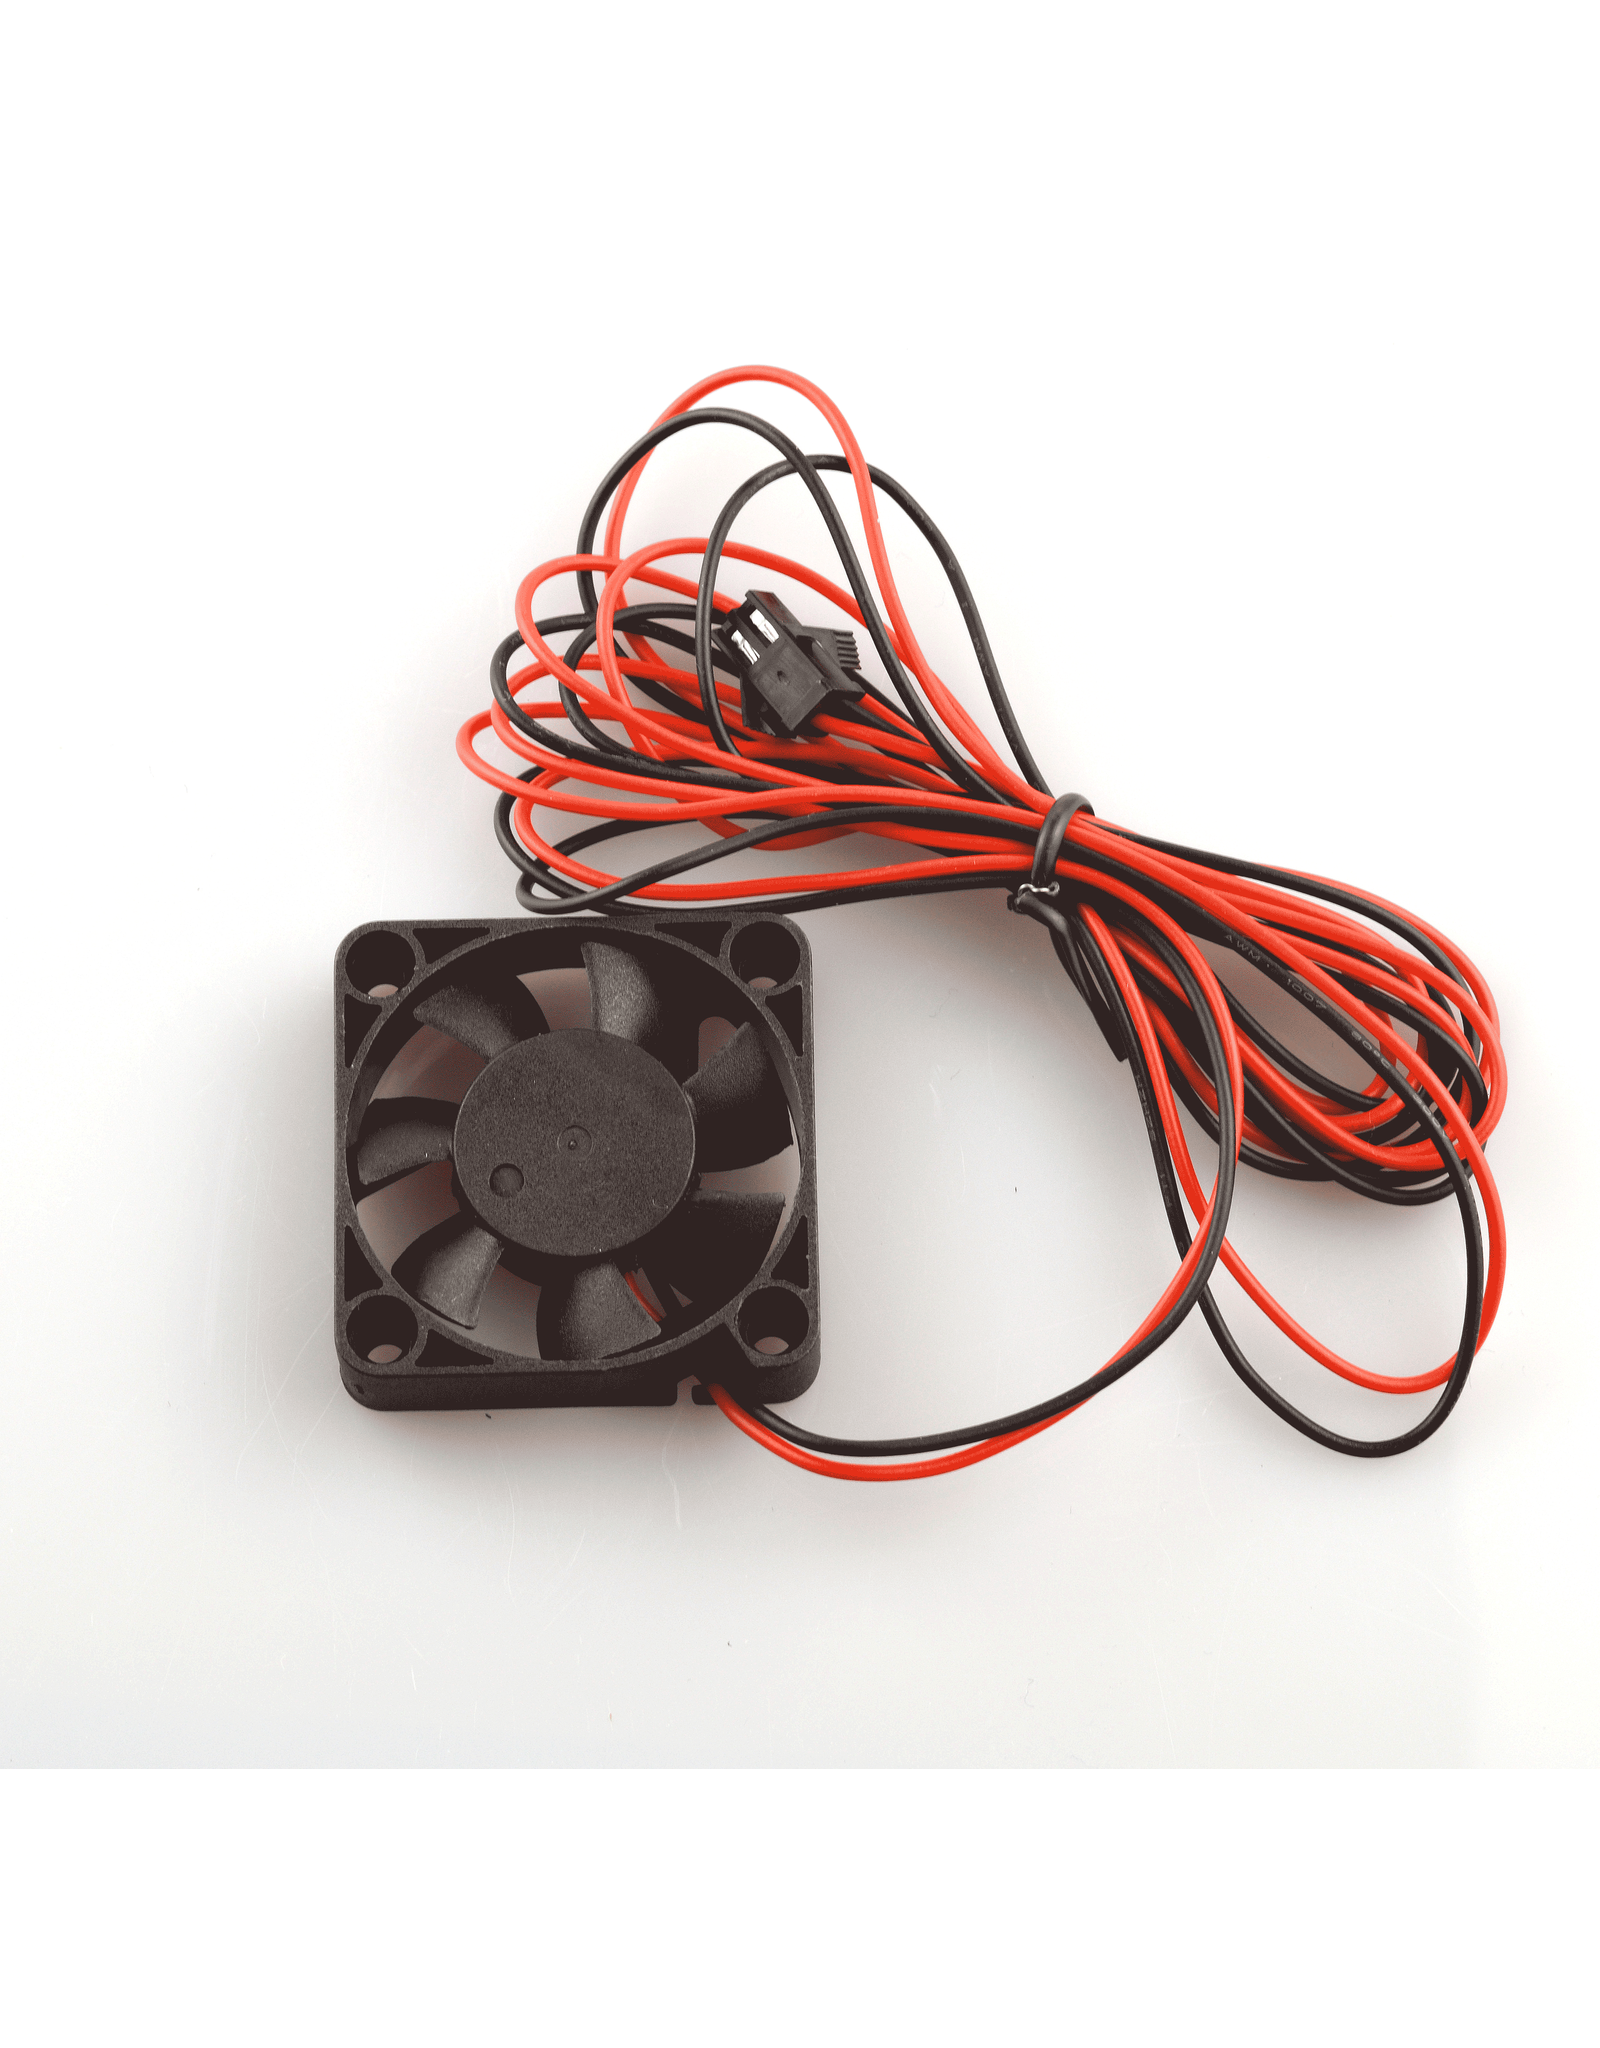 Creality/Ender  Creality 3D Ender 5 Plus 4010 Axiale ventilator voor Extruder cooling